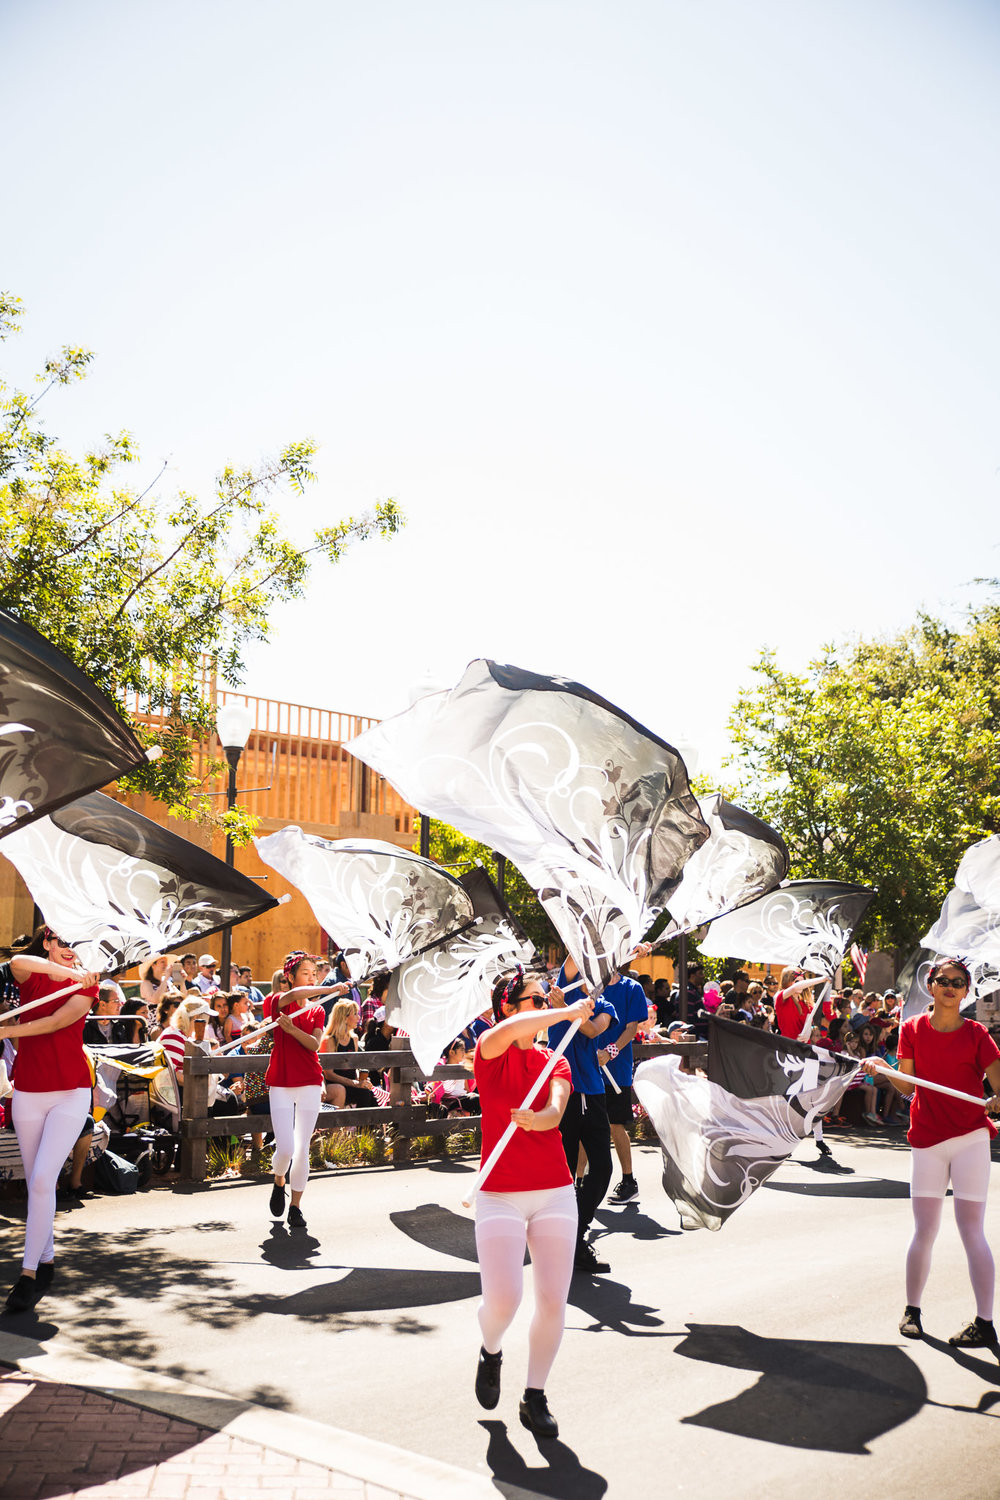 Archer_Inspired_Photography_Morgan_Hill_California_4th_of_july_parade-75.jpg